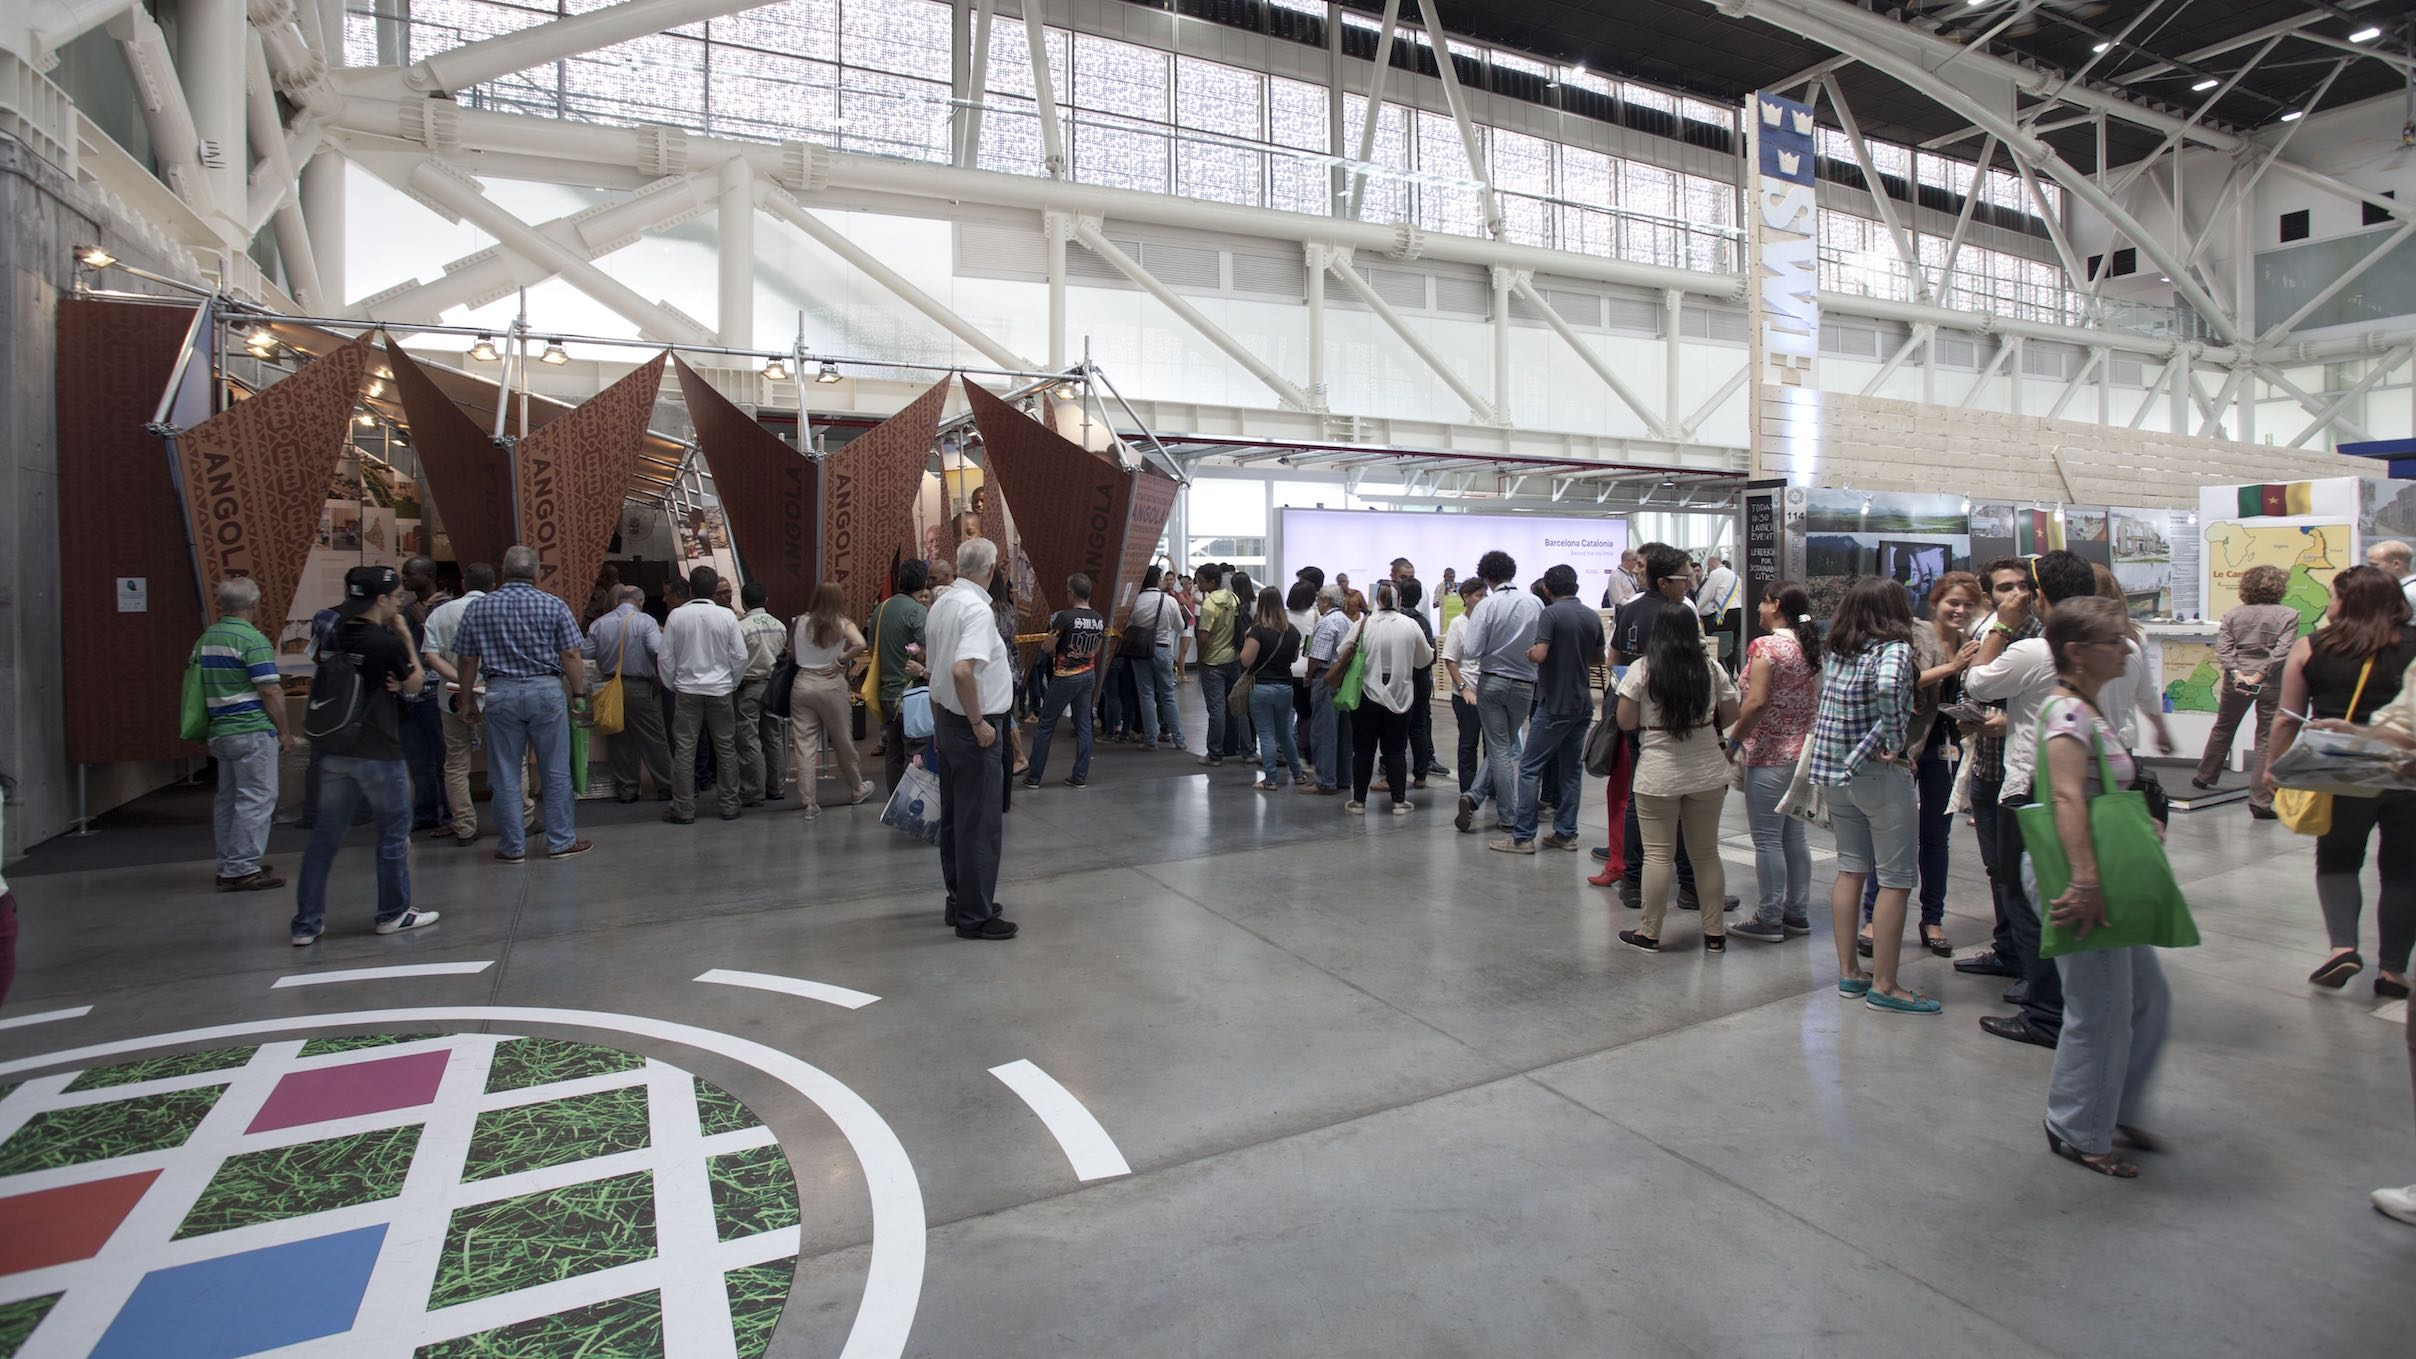 People queued to see the Angolan exhibition at the World Urban Forum in Medellin, Colombia